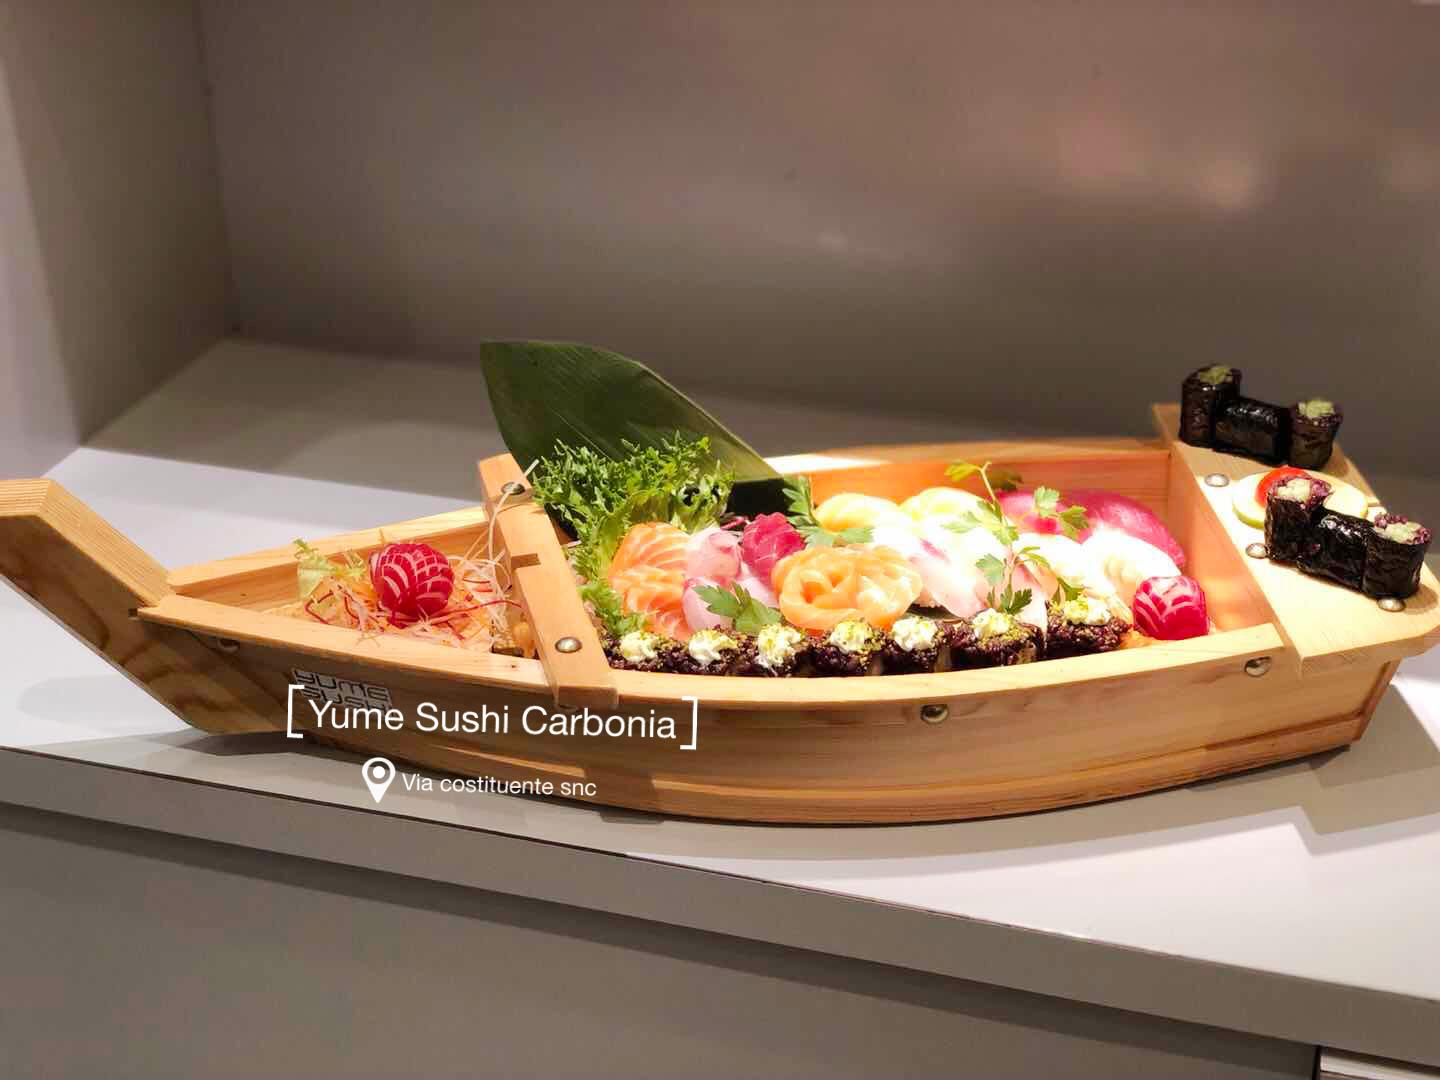 All you can eat - Yume Sushi